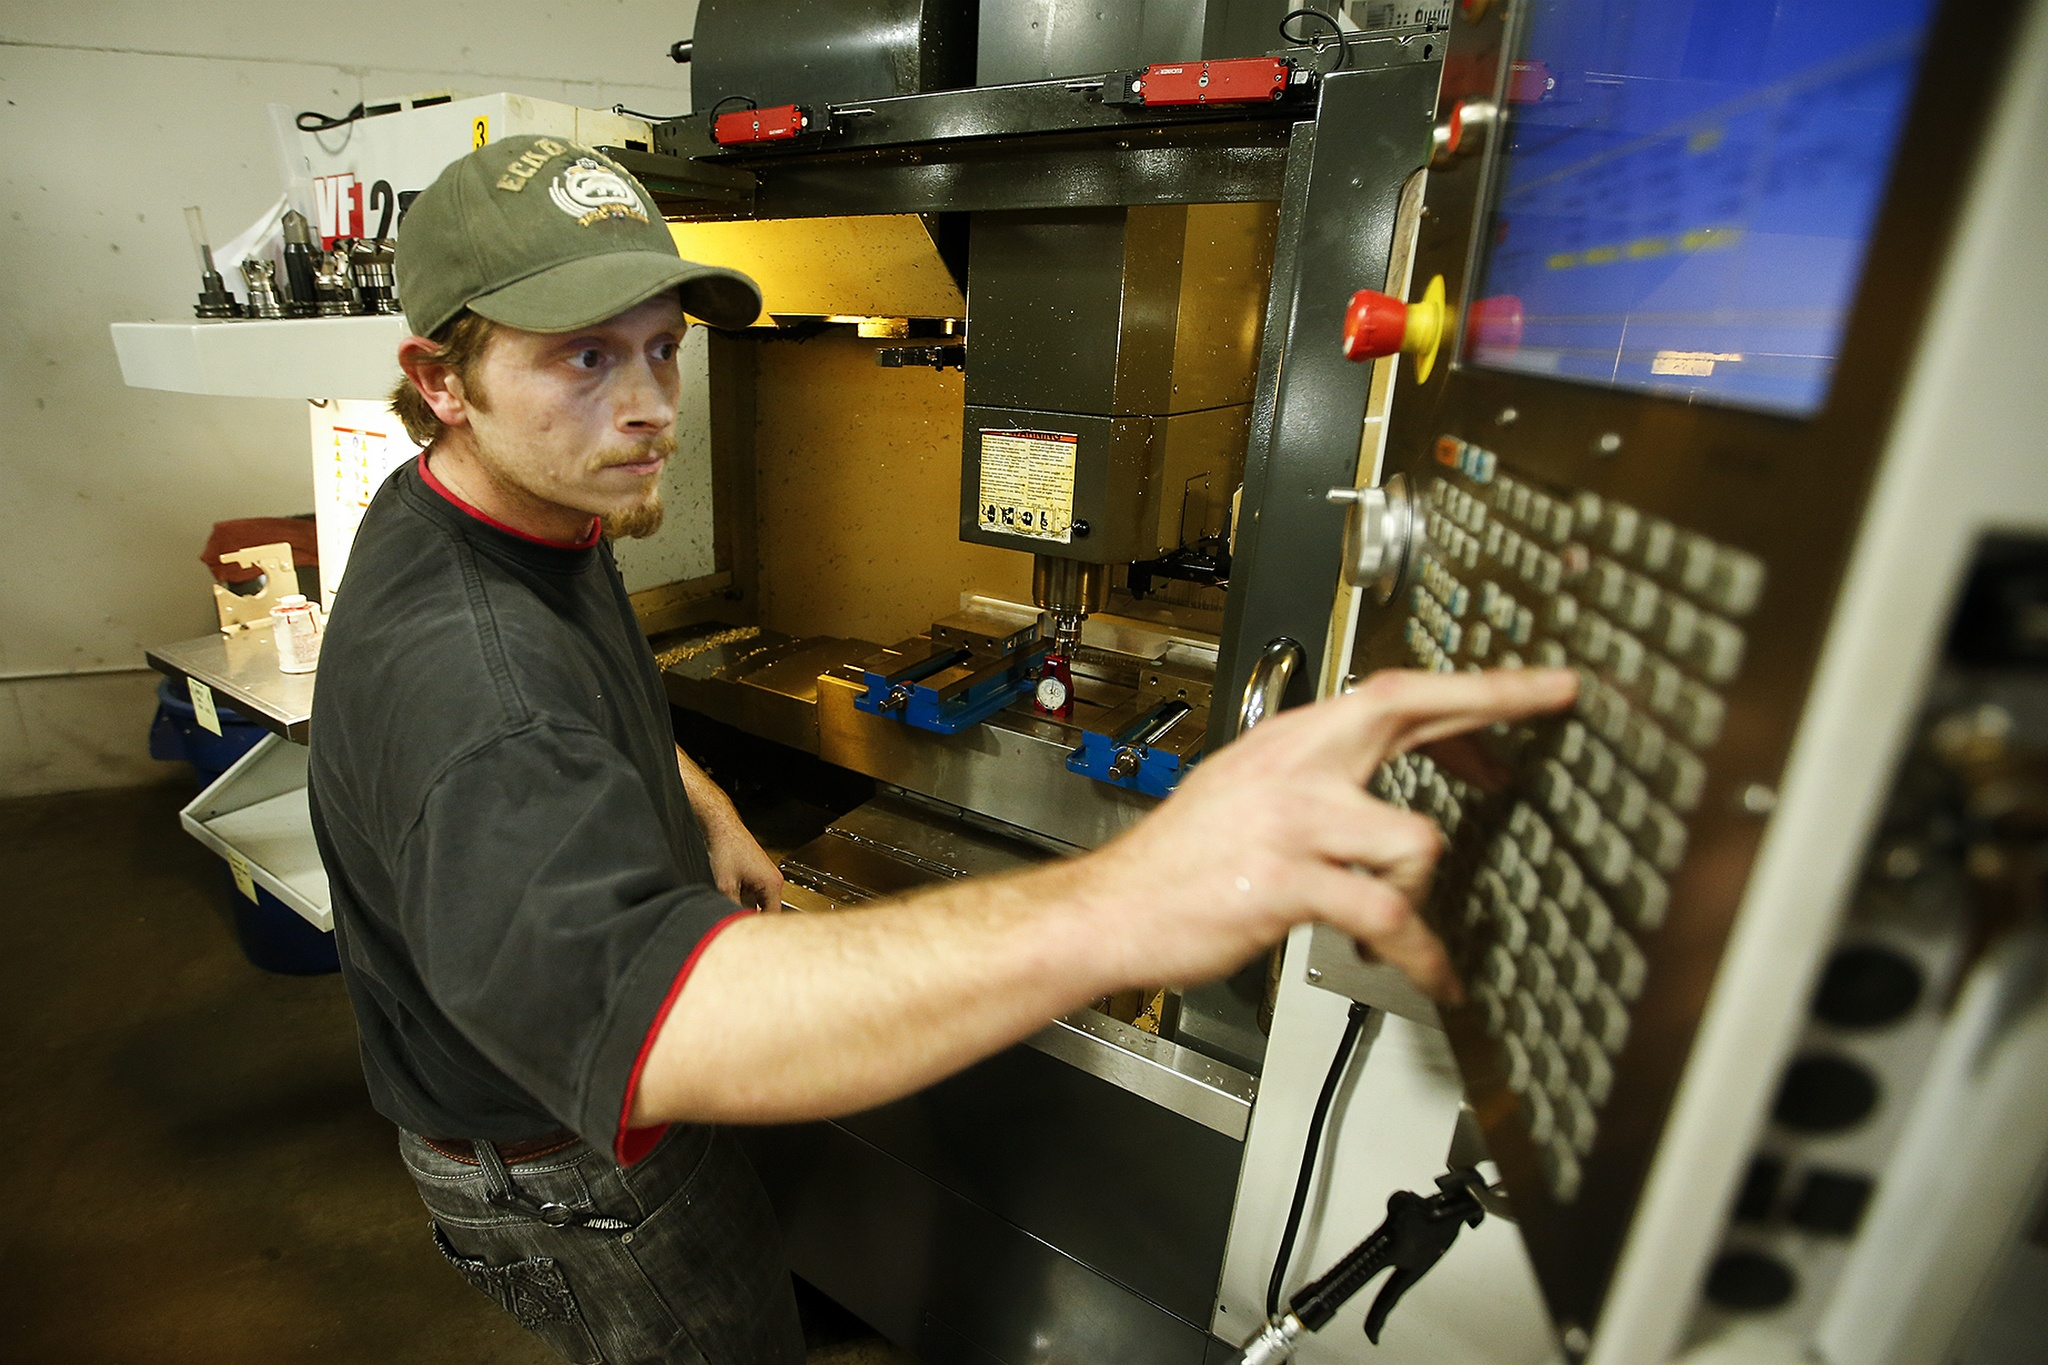 Machinist David Willis makes adjustments to a CNC machine at RB Enterprises in Mukilteo on Wednesday. (Ian Terry / The Herald)